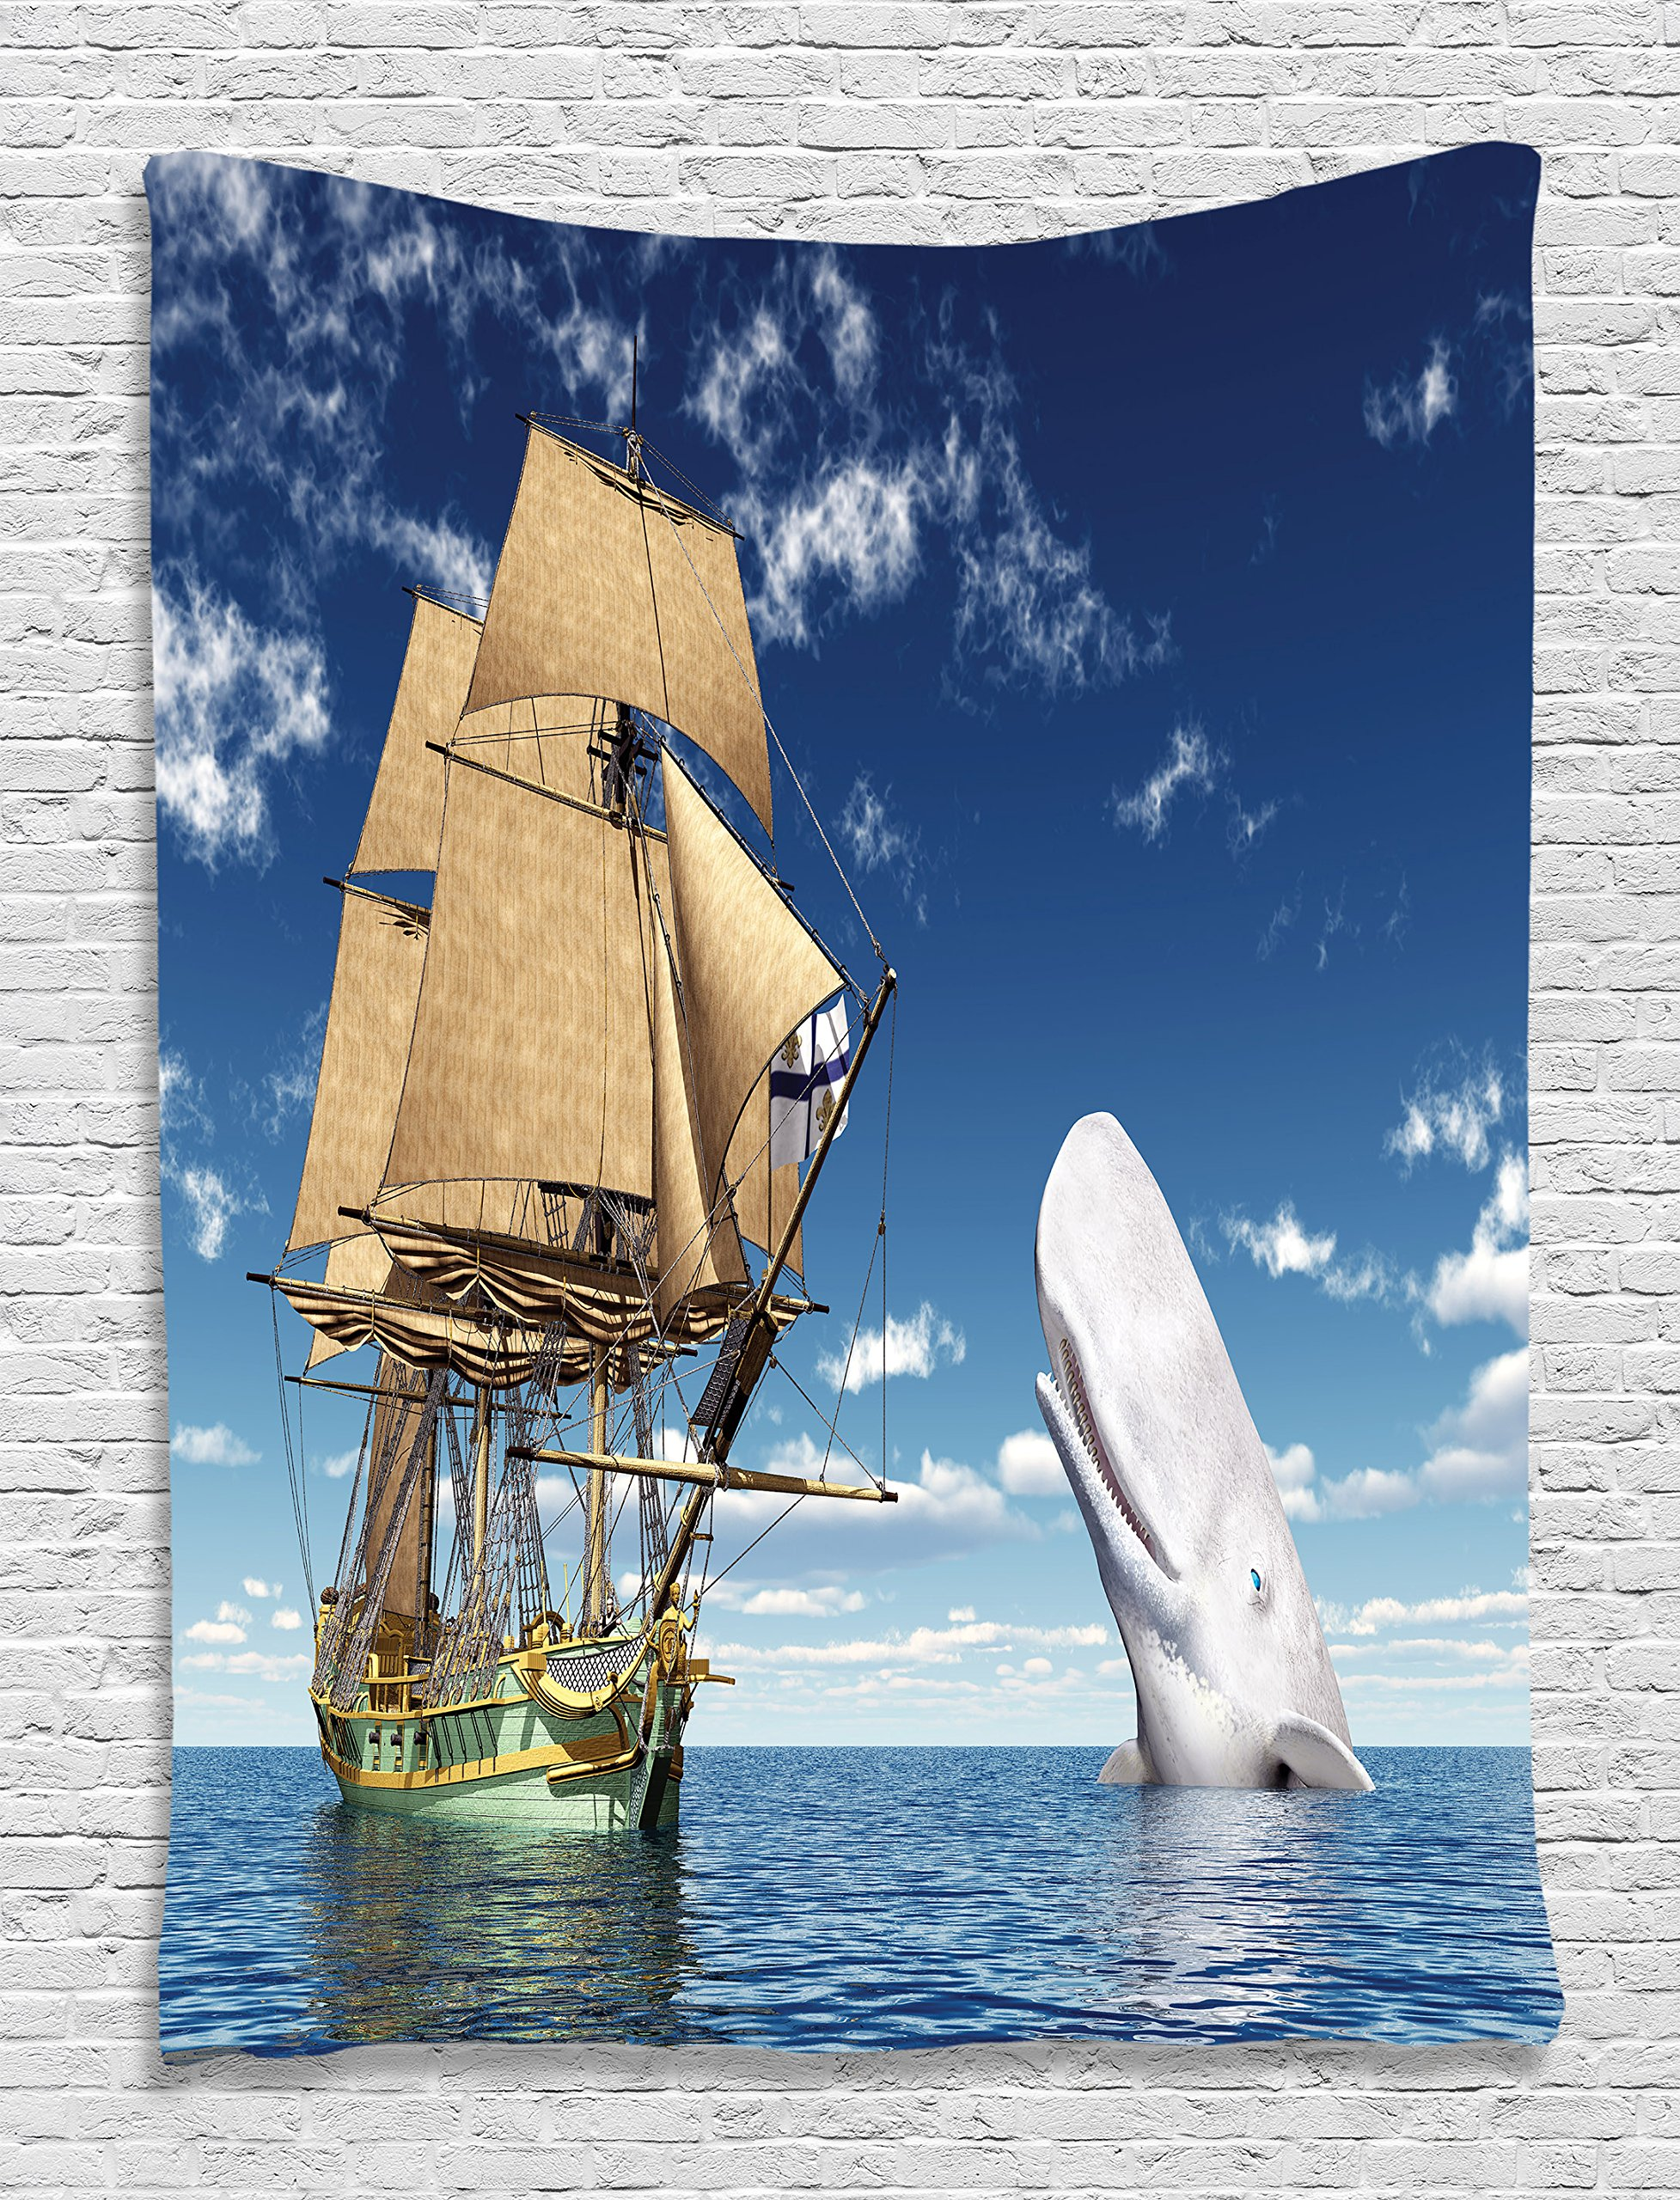 Ambesonne Whale Decor Ocean Lover Pirate Flag Sailorboat Ornament Decorations Living Room Bedroom Accessories for Home Dorm Kids Youth Nursery Wall Decor Tapestry Wall Hanging, White Blue